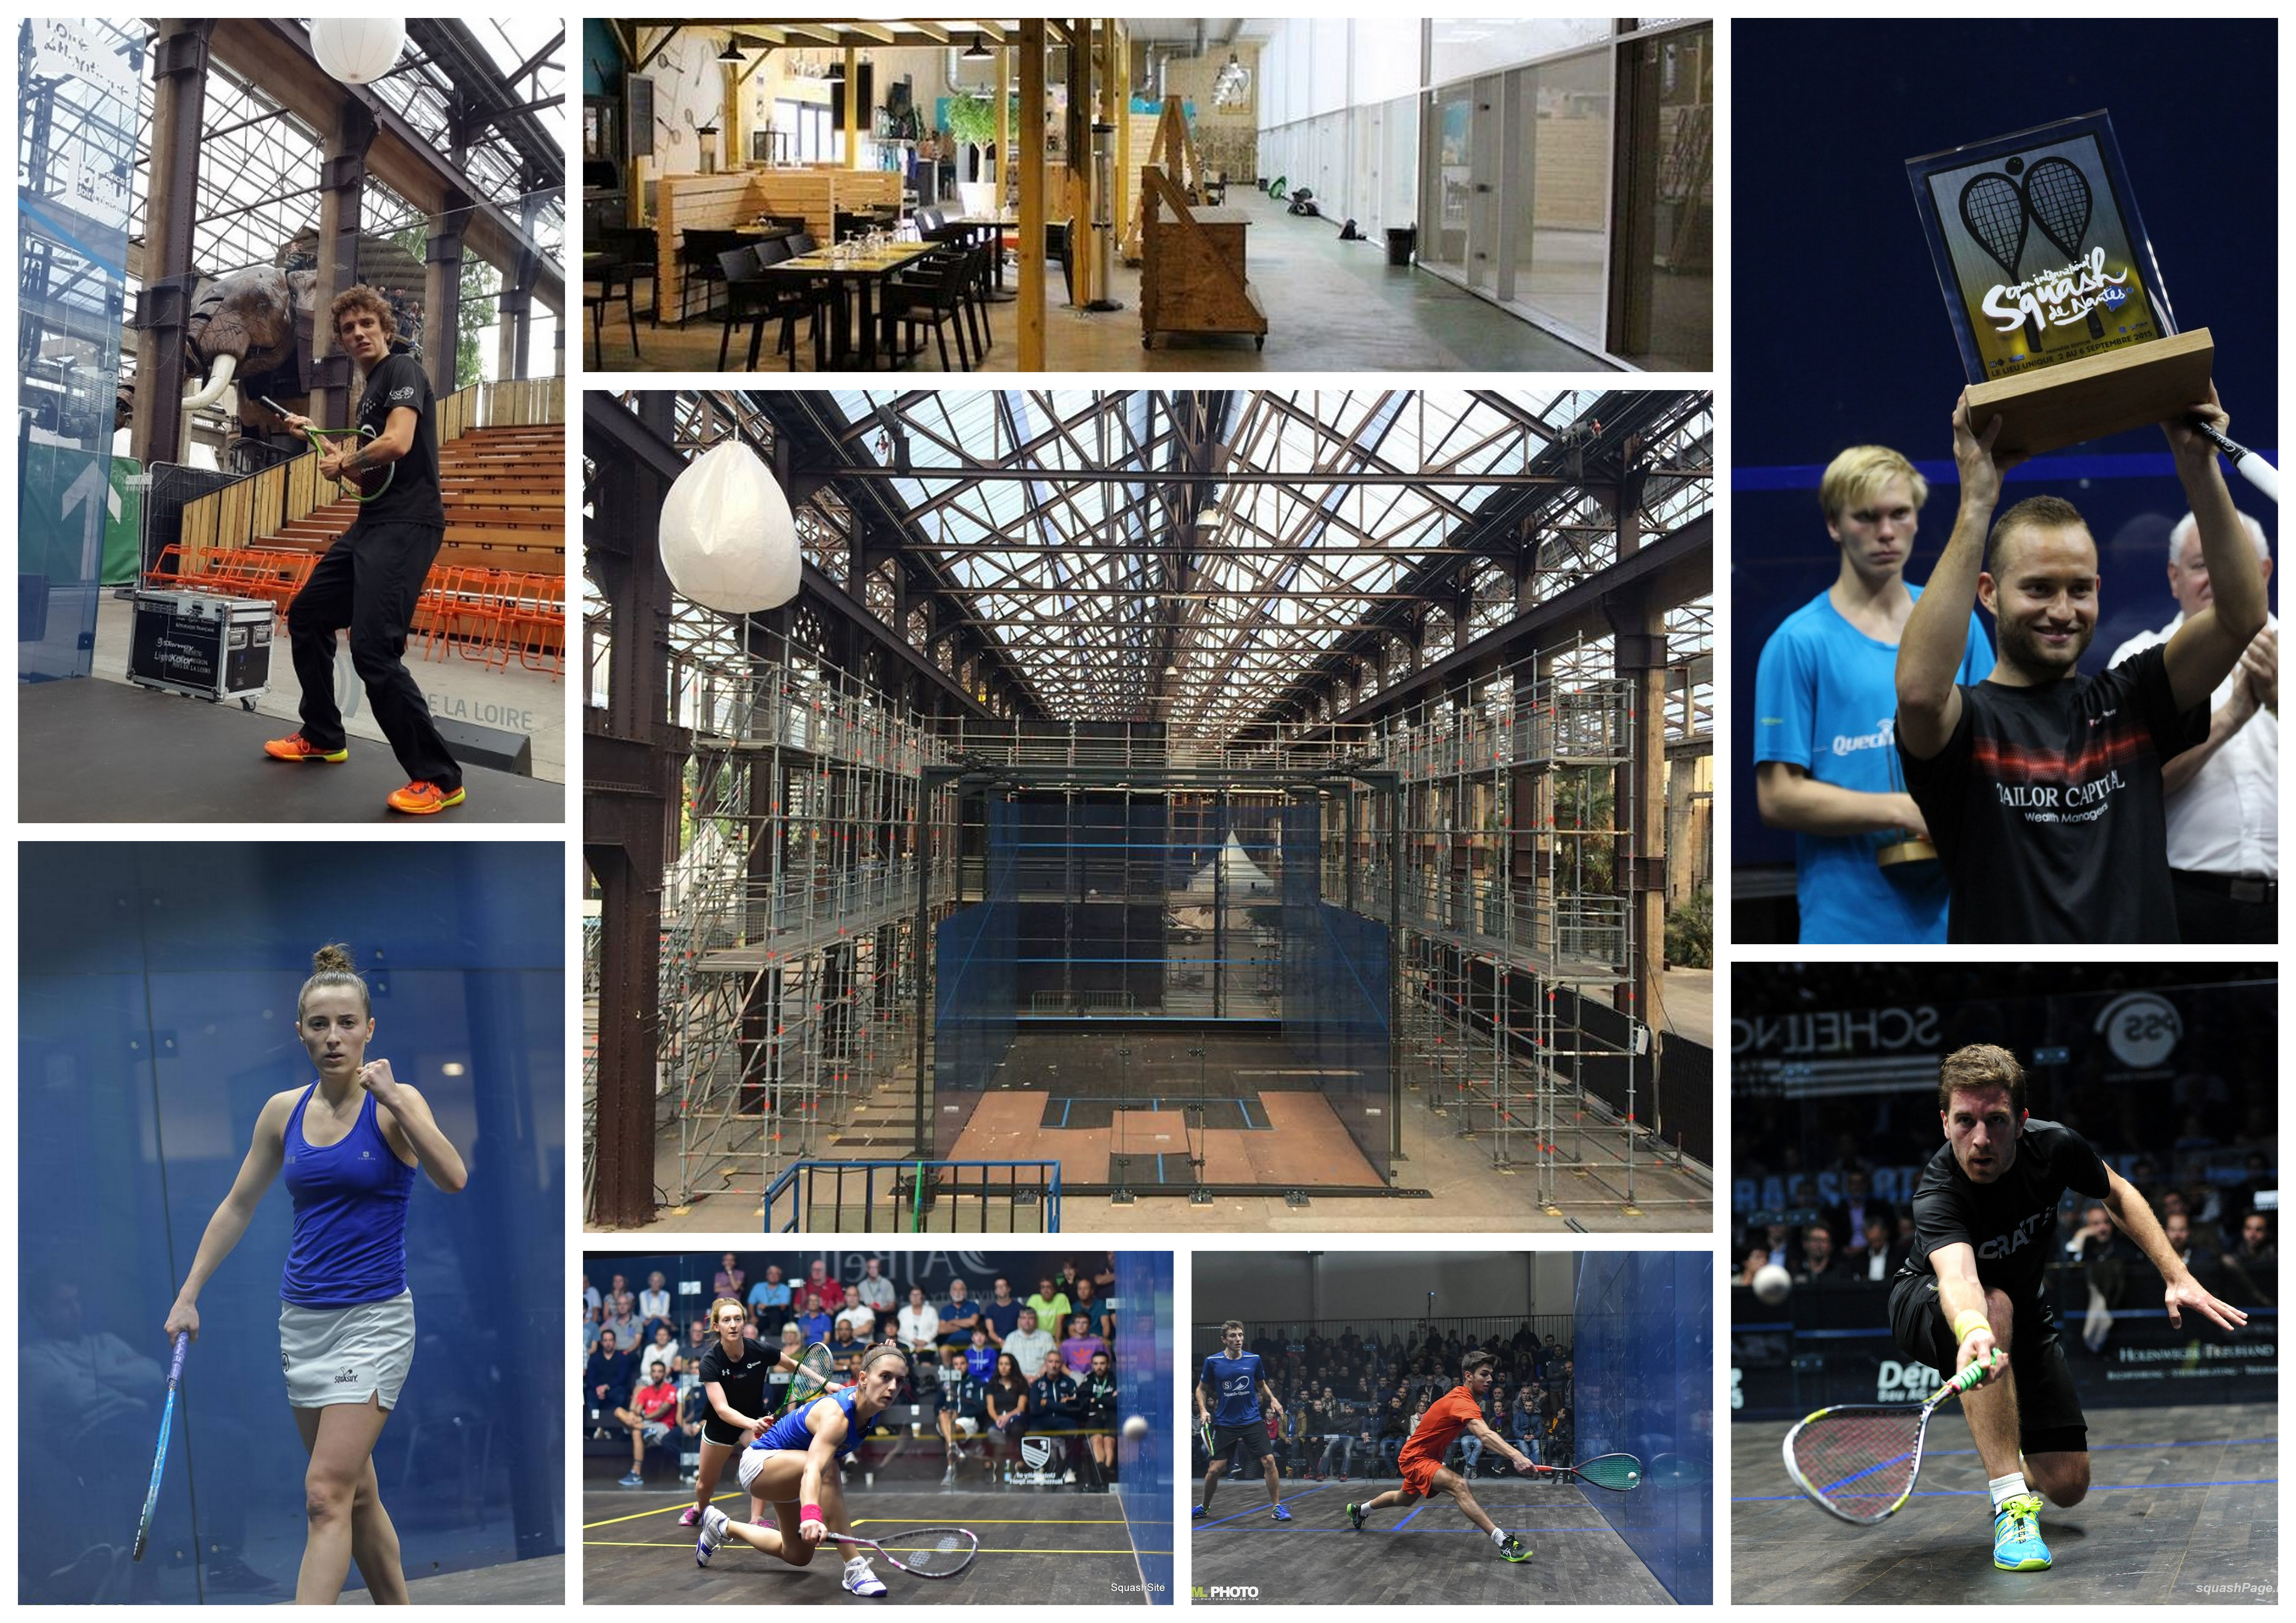 OPEN INTERNATIONAL DE NANTES : SUIVEZ LE PREMIER TOUR EN DIRECT !